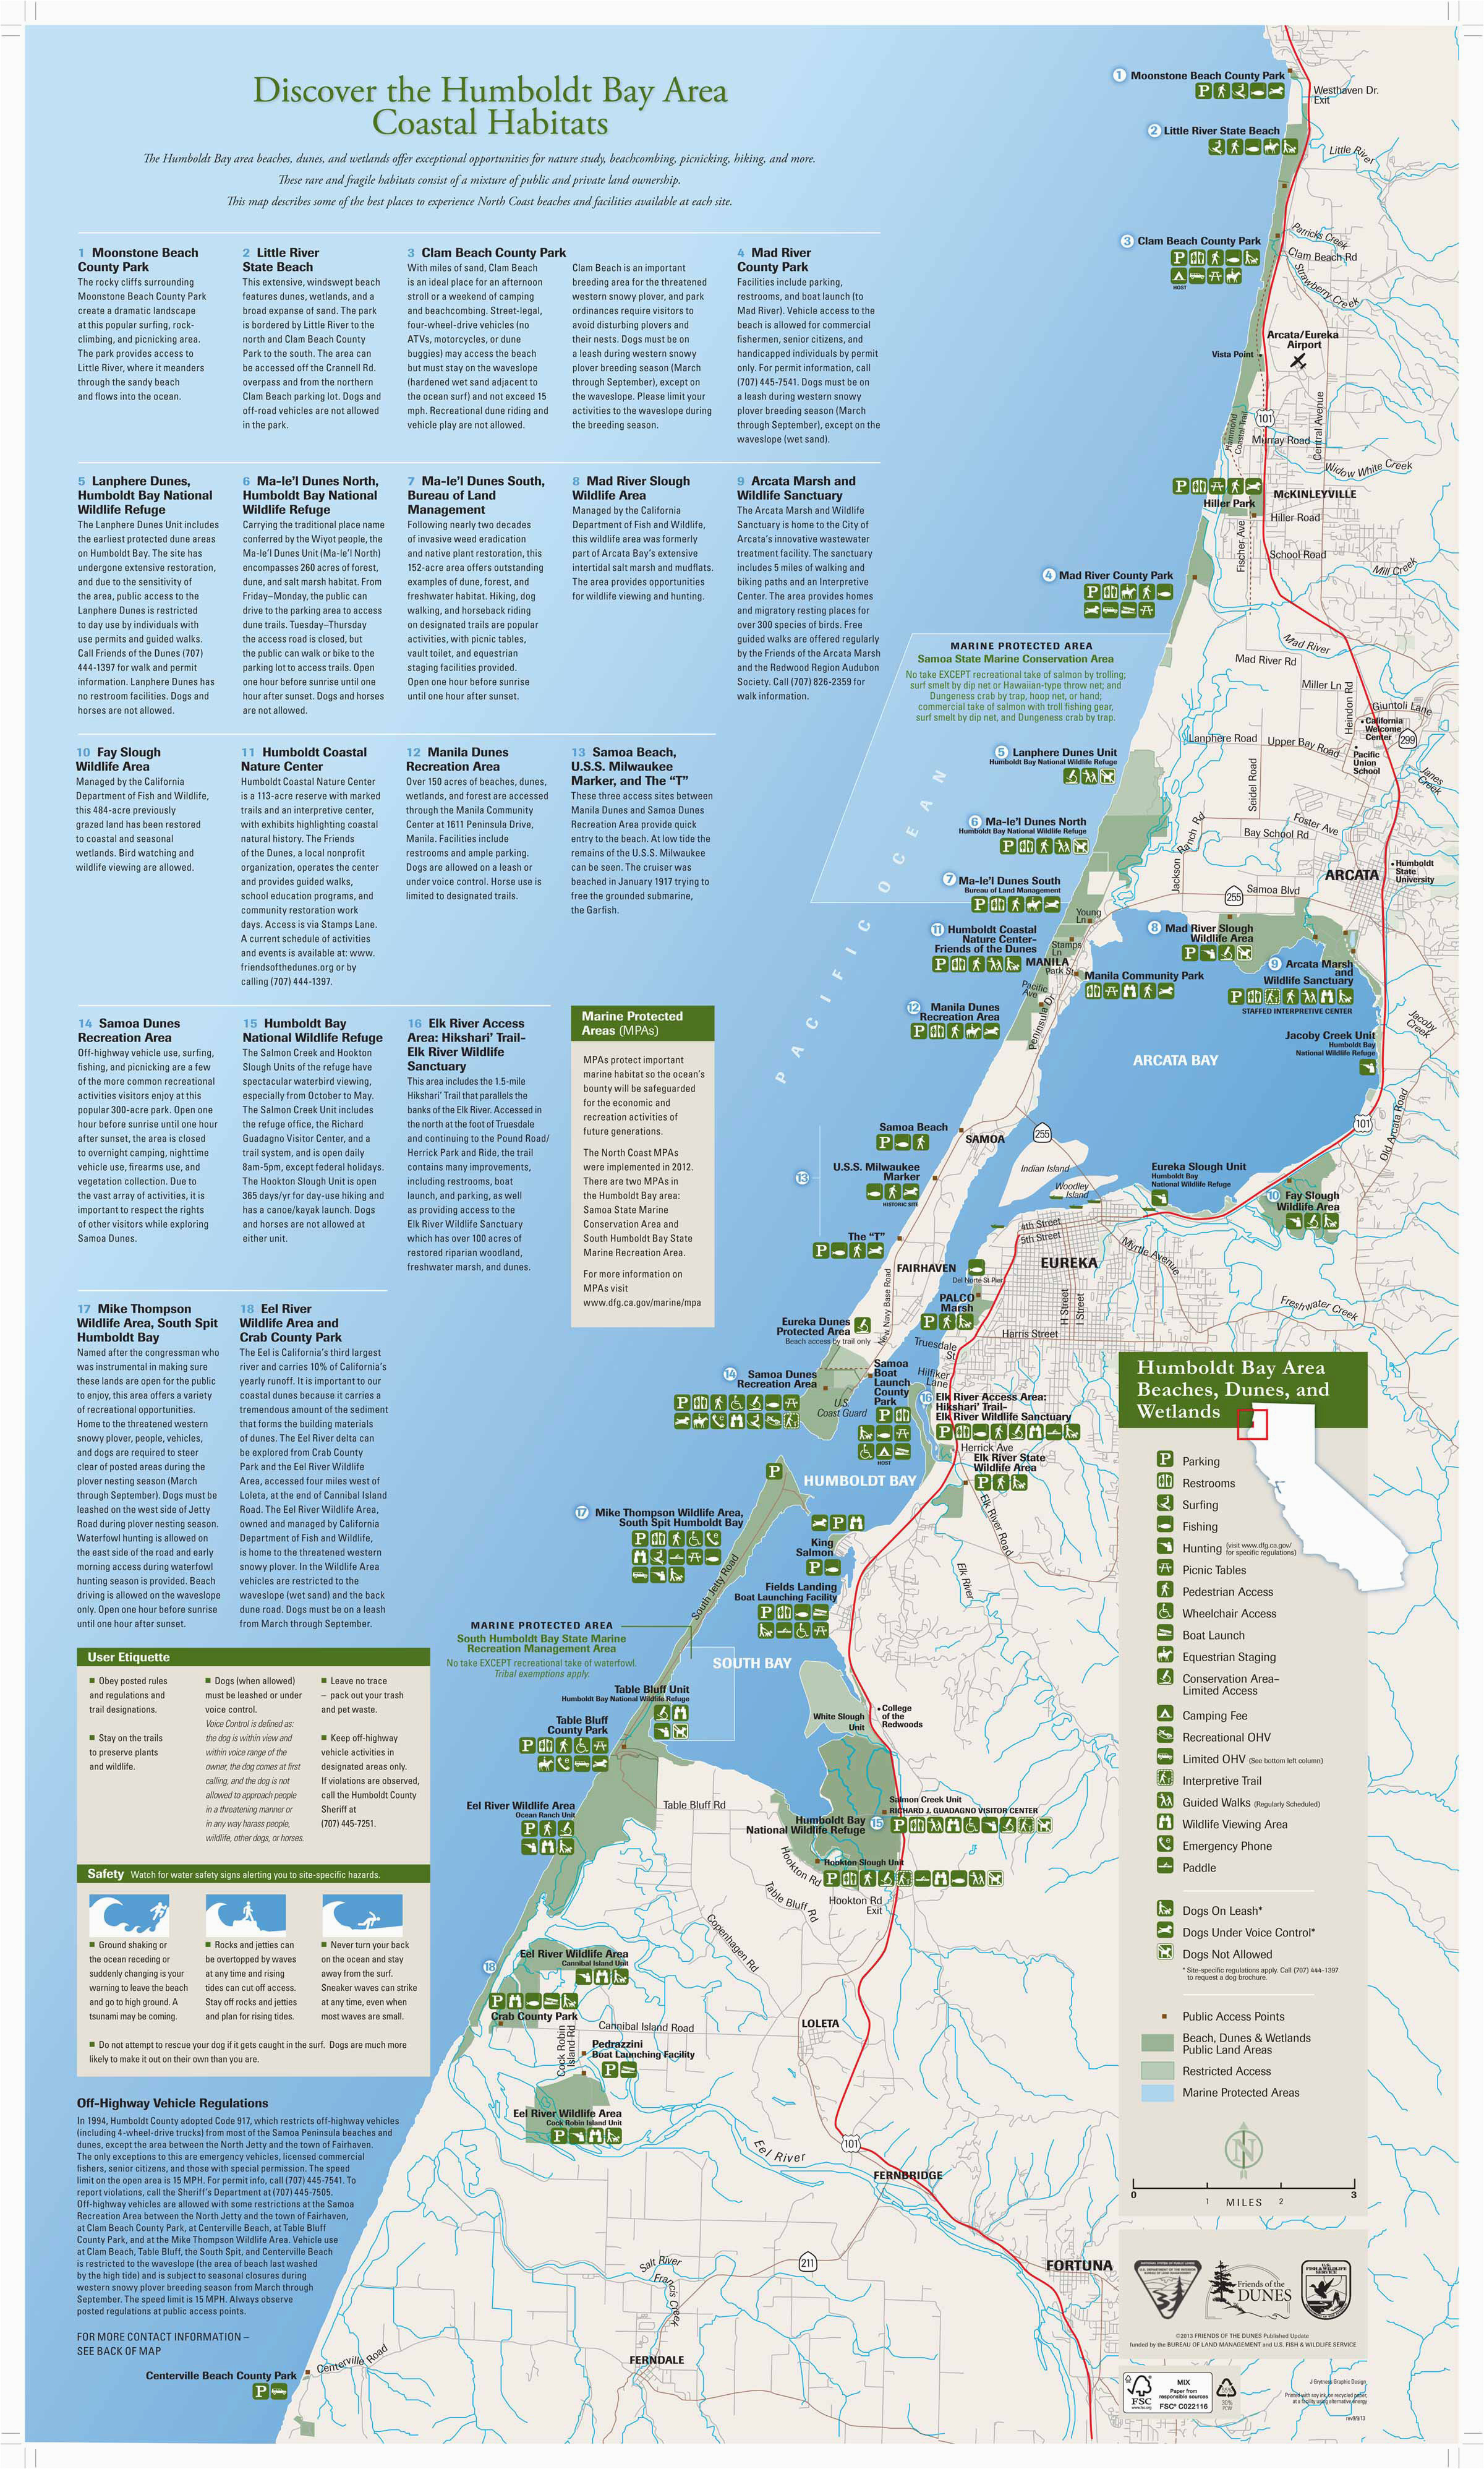 Southern oregon University Map Pacific Crest Trail Map northern California Printable Map north